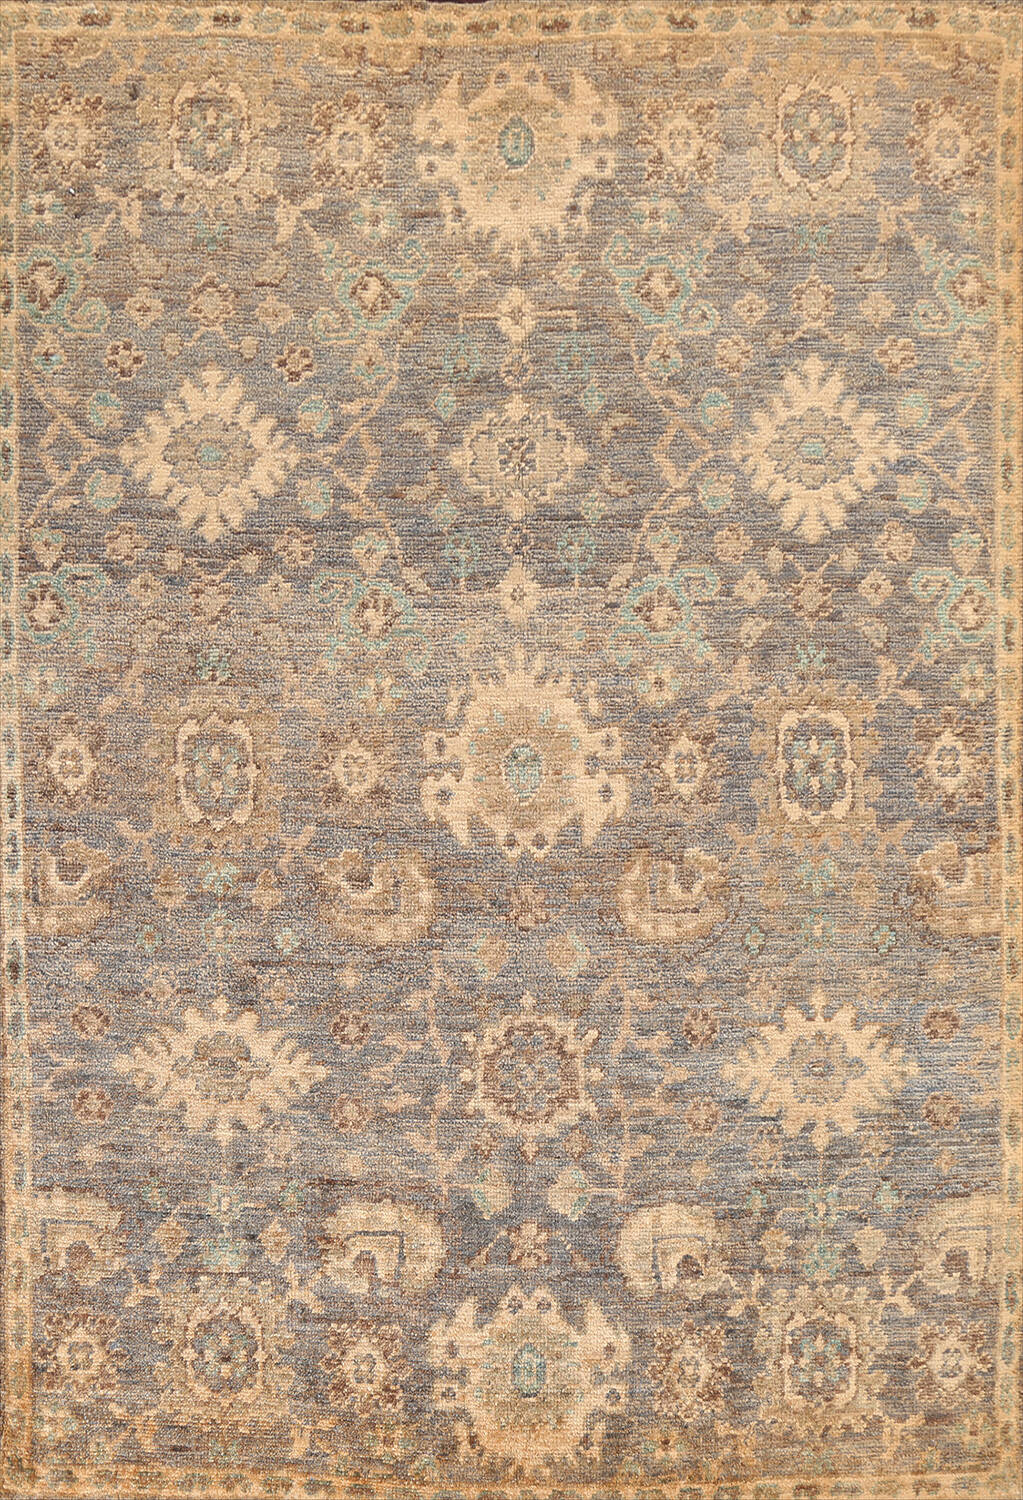 All-Over Oushak Oriental Area Rug 5x8 image 1